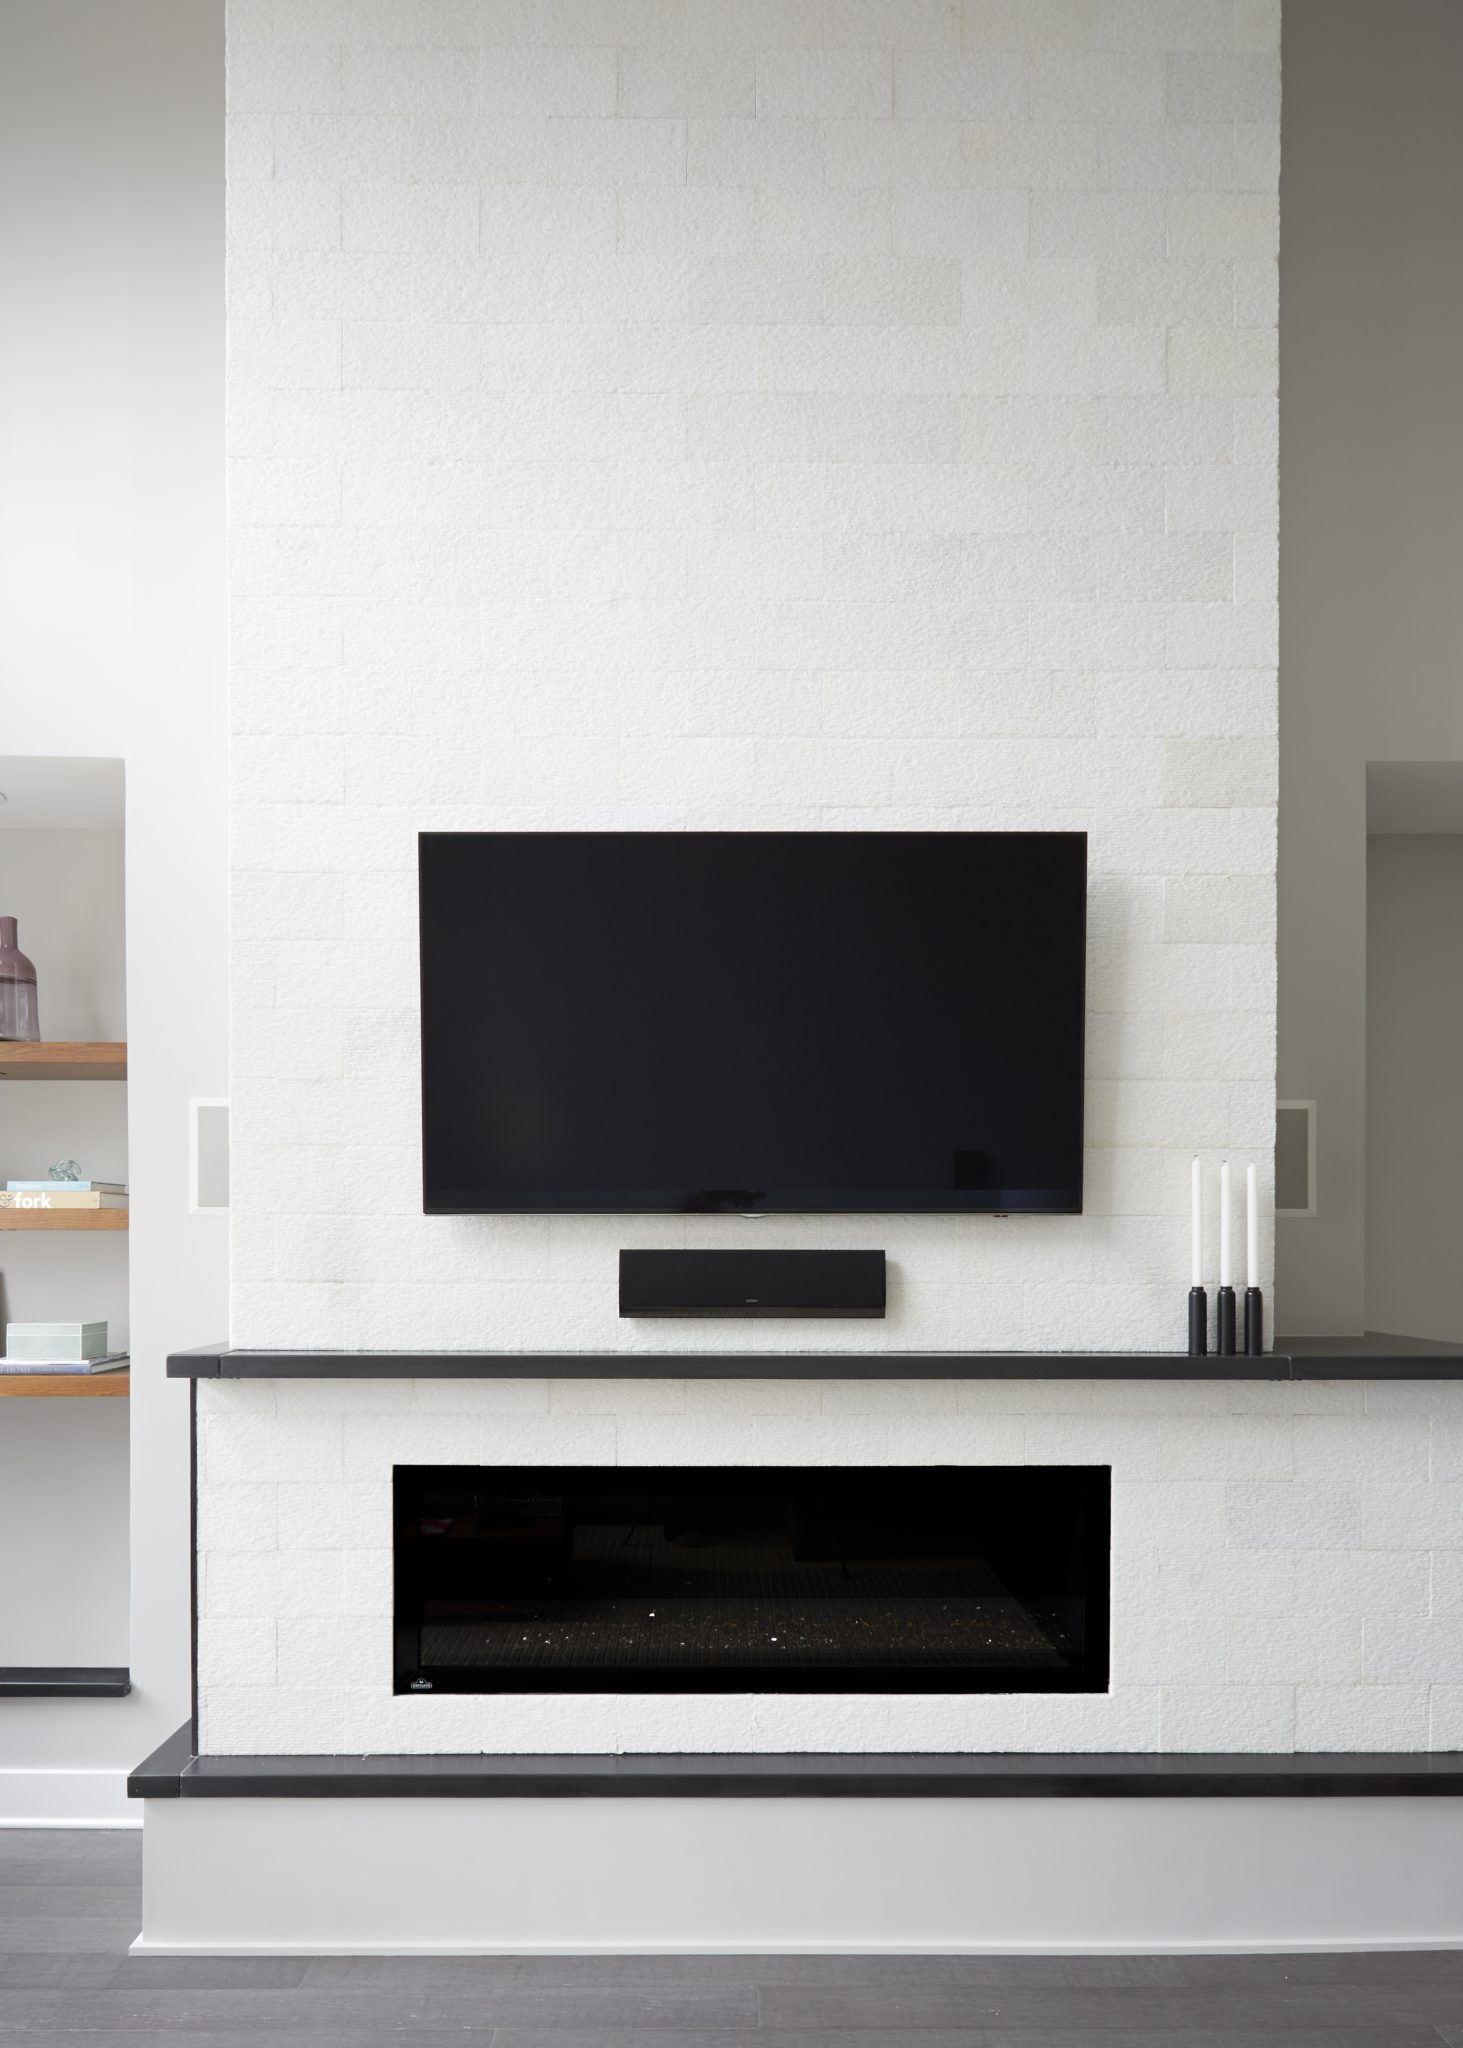 Modern condo with gas fireplace in living room, floating shelves, and concrete by Maren Baker Design